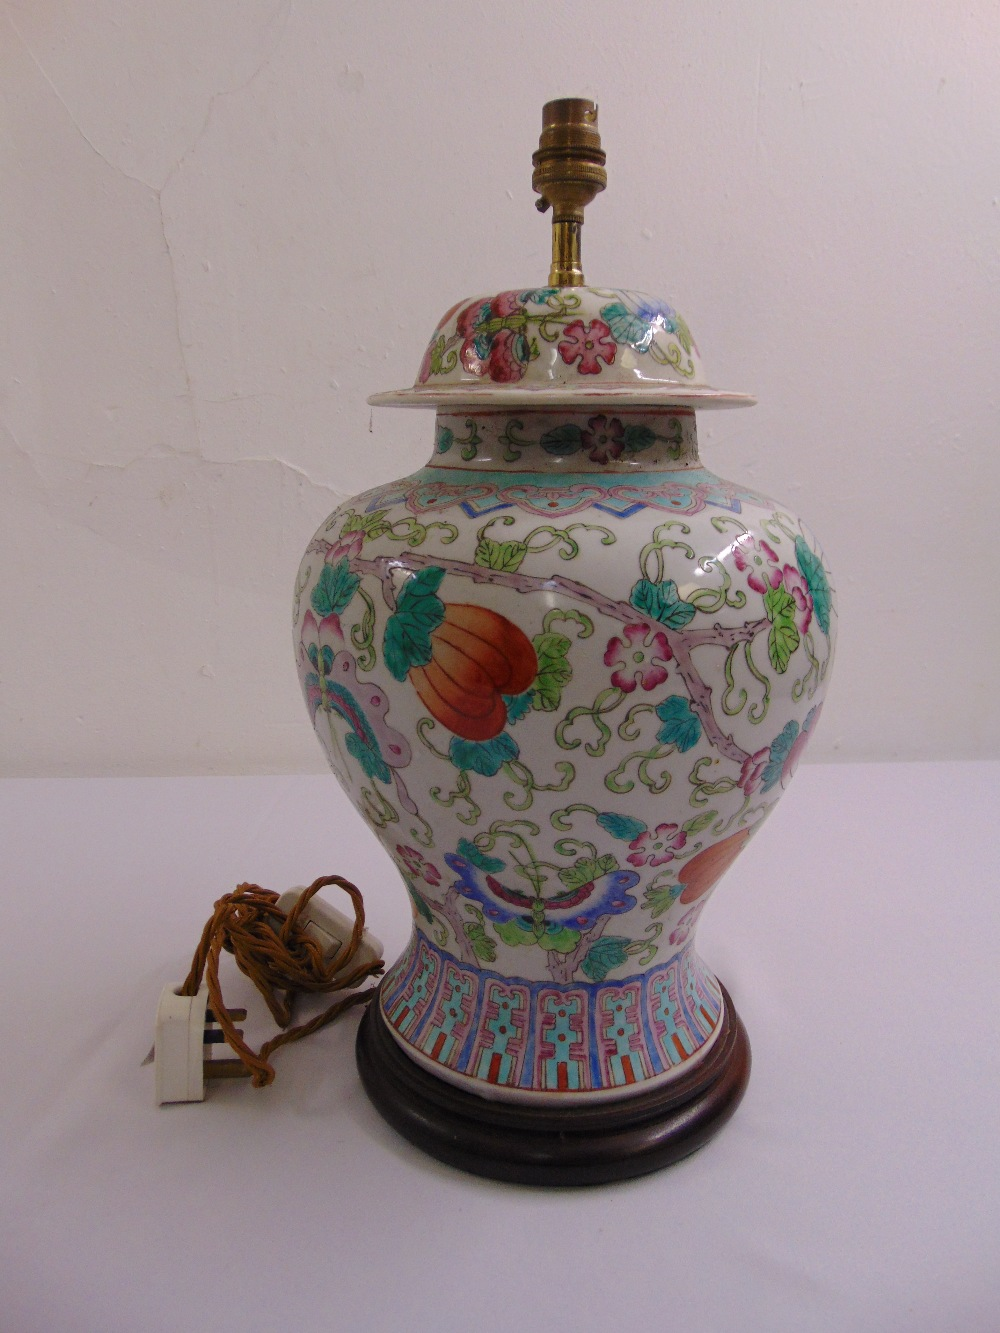 Lot 45 - A Chinese porcelain baluster vase decorated with flowers and butterflies, later converted to a table